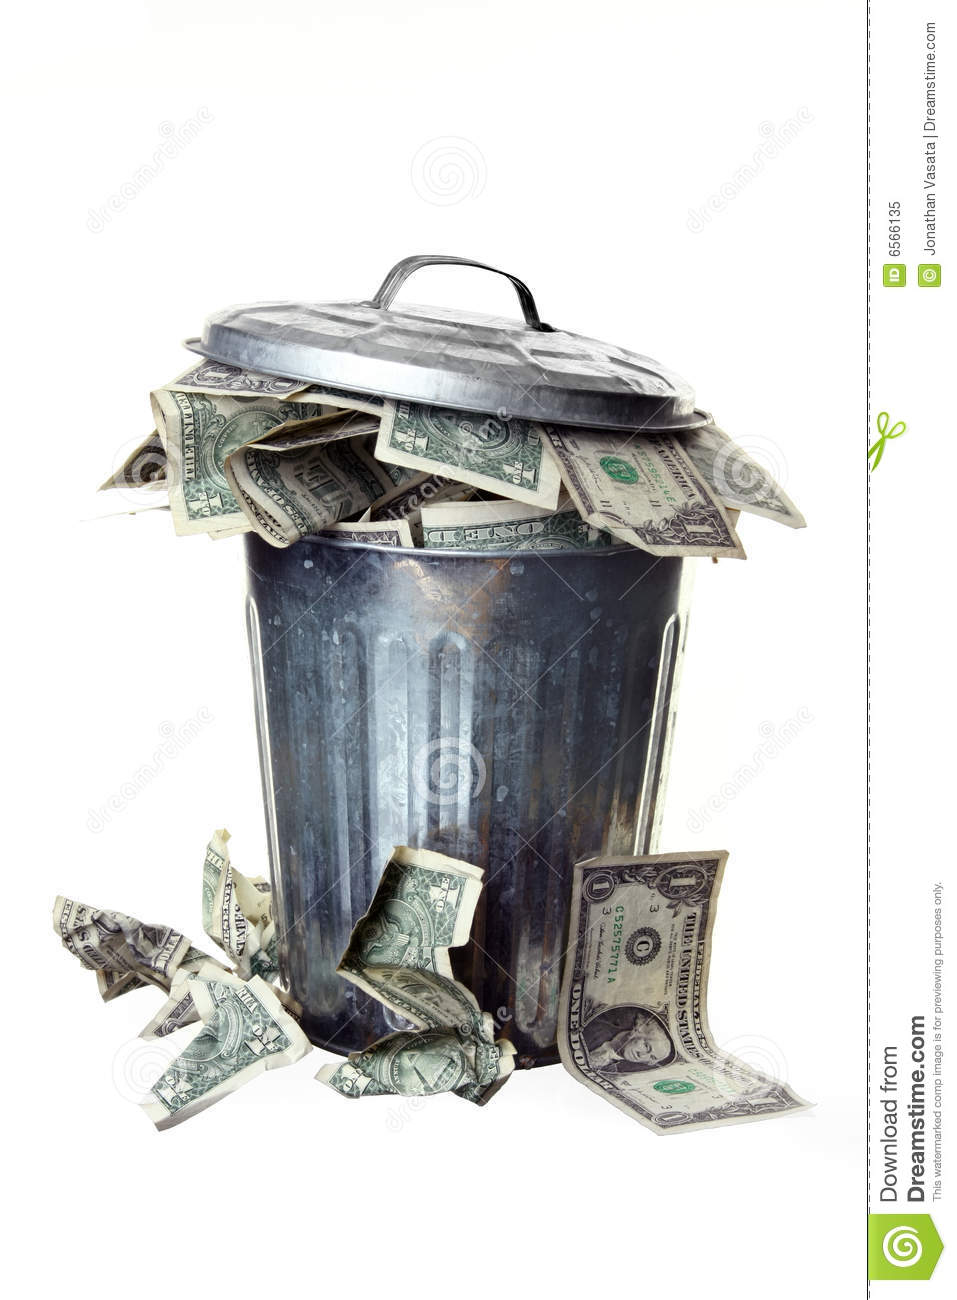 Trash Can Full Of Money Stock Image Image Of Crumpled